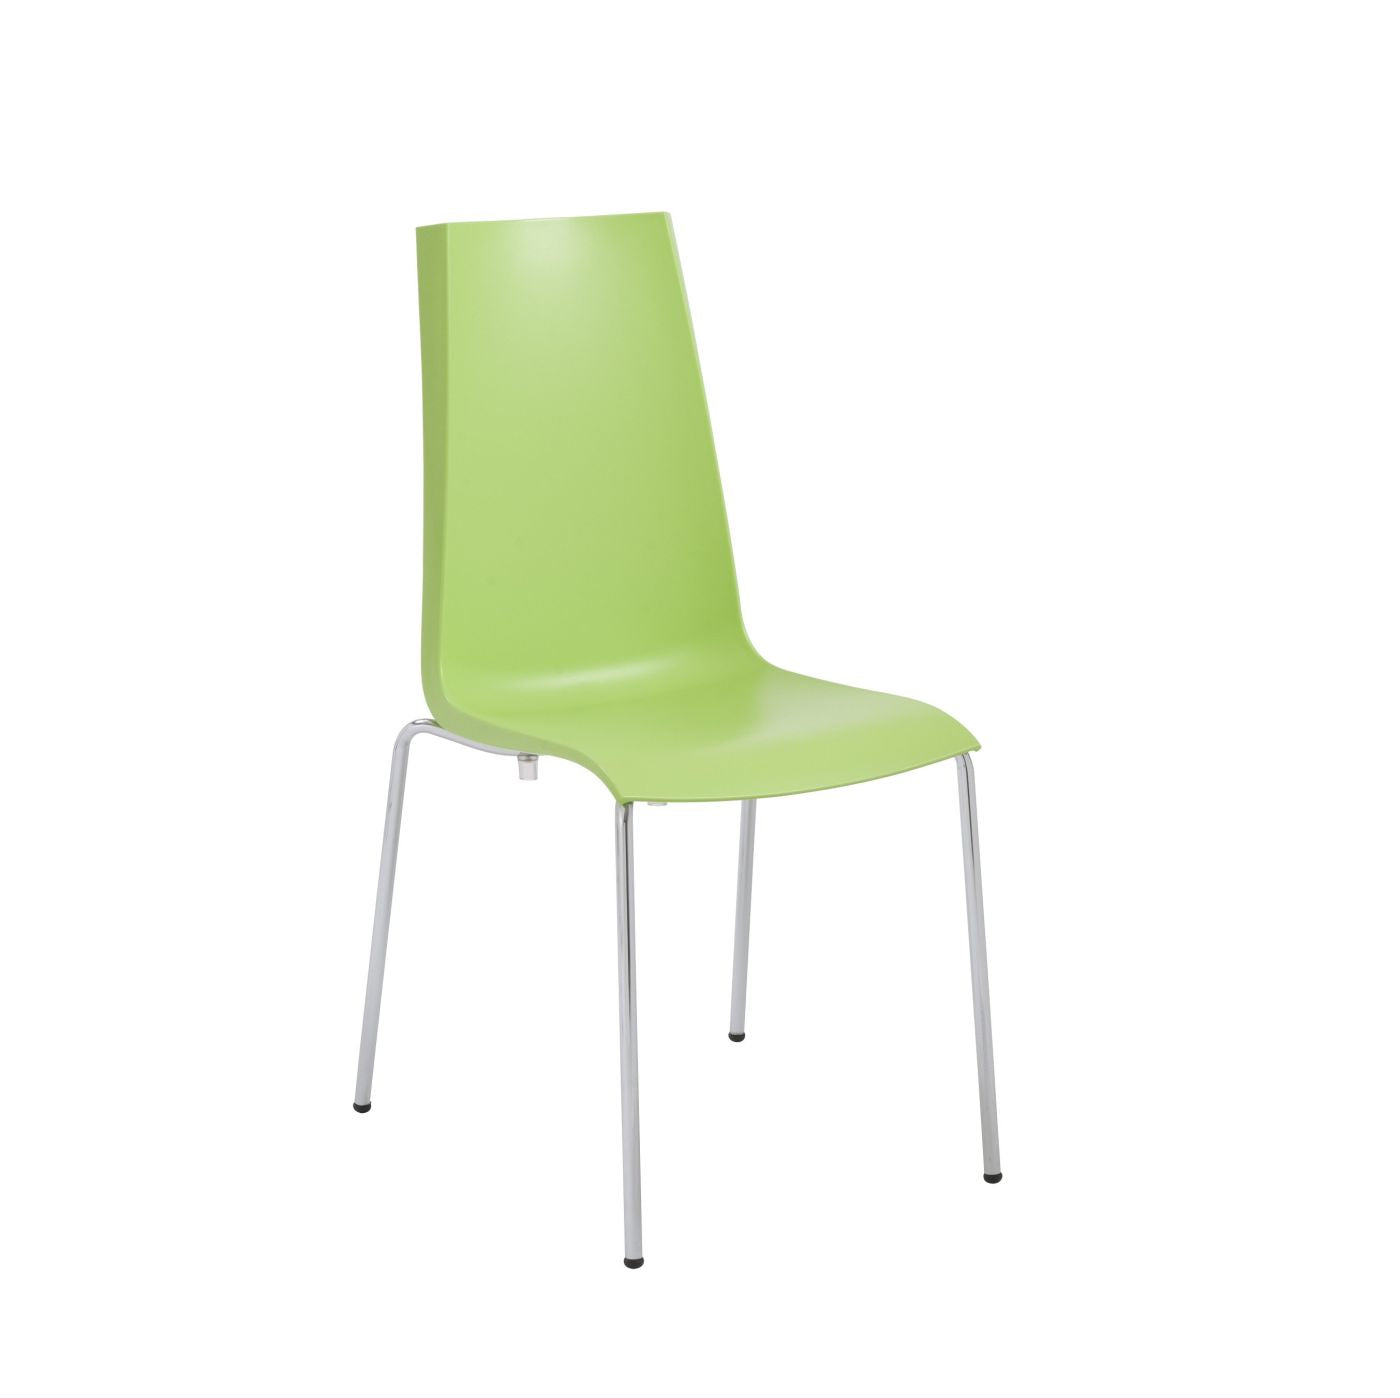 Tobago Stacking Chair Brown Chrome: Buy Euro Style EURO-266051 Mannequin Stacking Side Chair